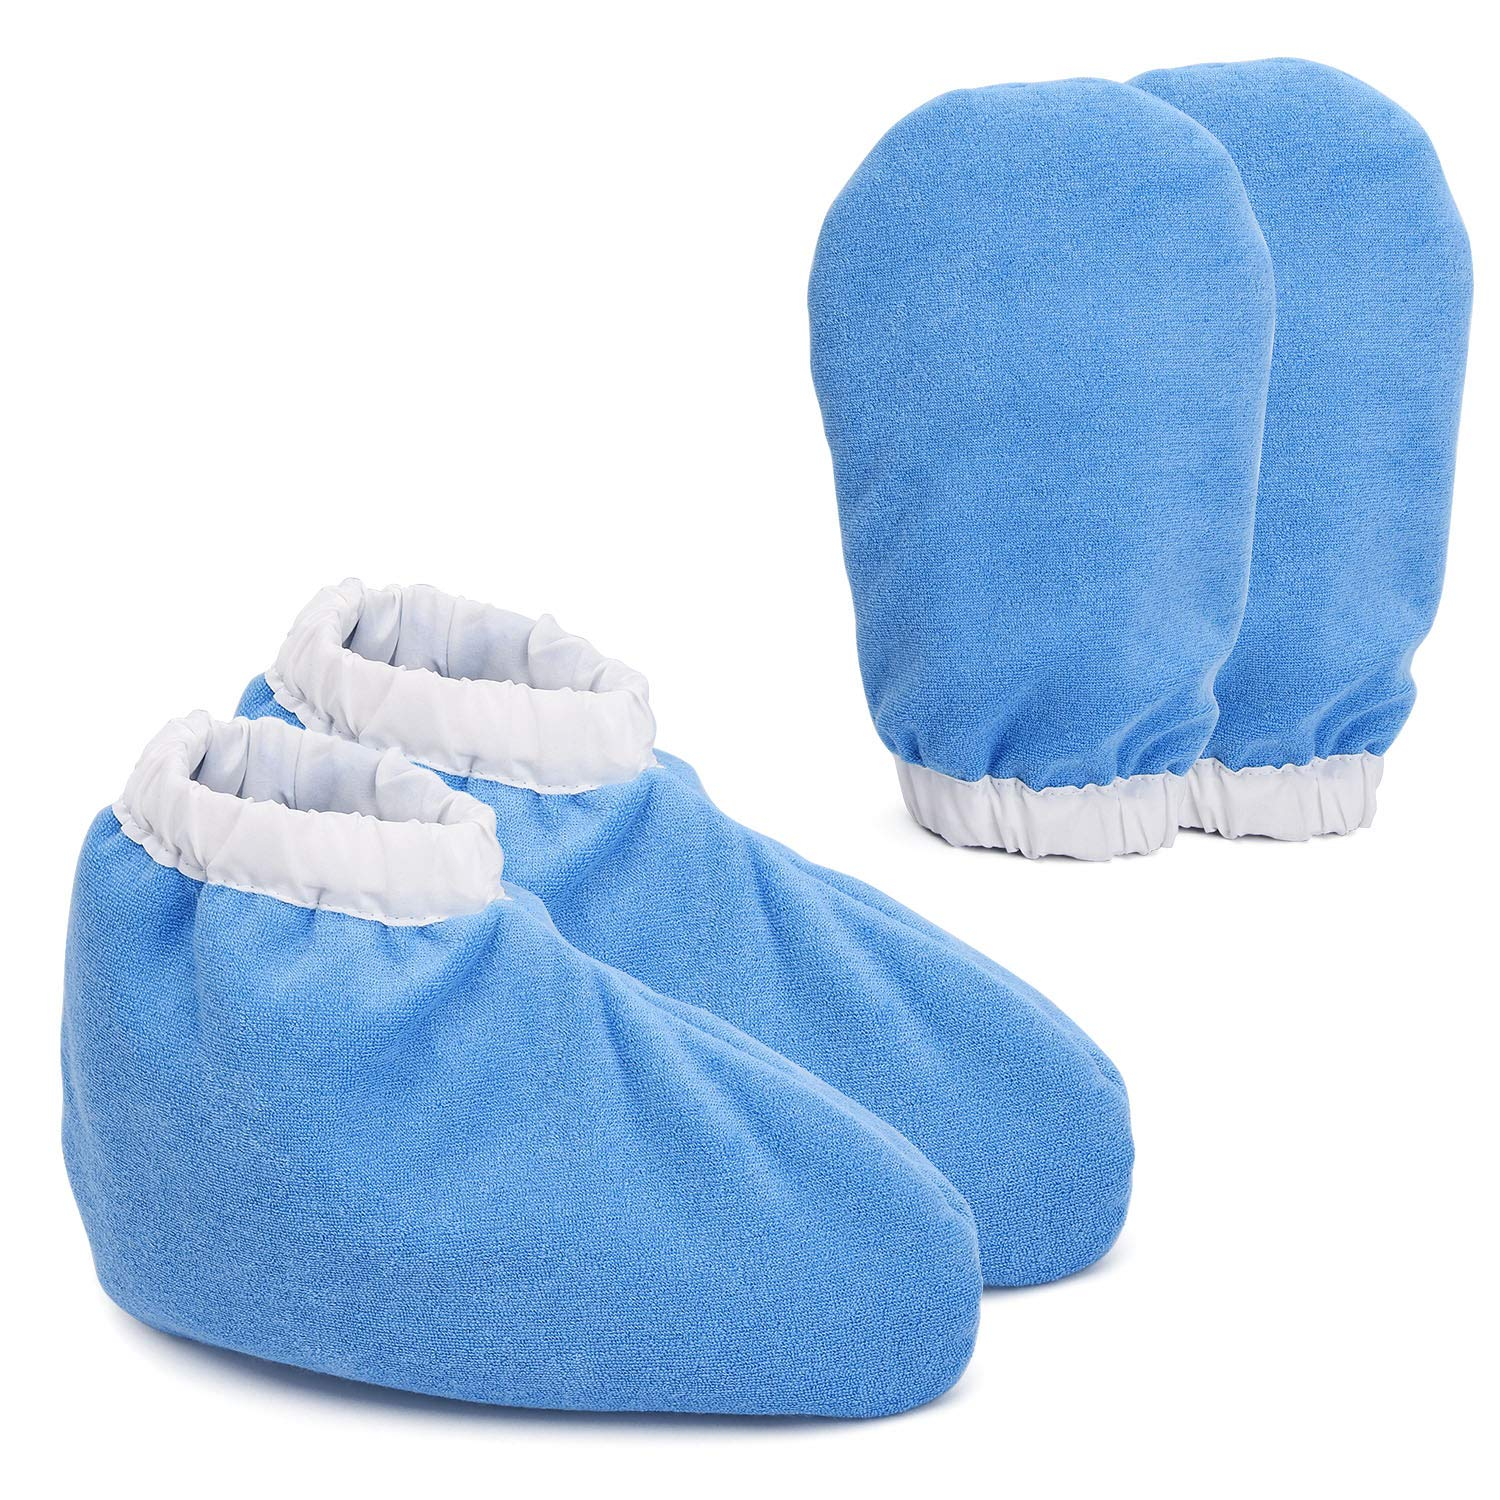 Paraffin Wax Bath Terry Cloth Gloves & Booties, Hand Care Treatment Mitts Spa Feet Cover, Thick Heat Therapy Insulated Soft Cotton Mittens Work Kit for Women - Blue